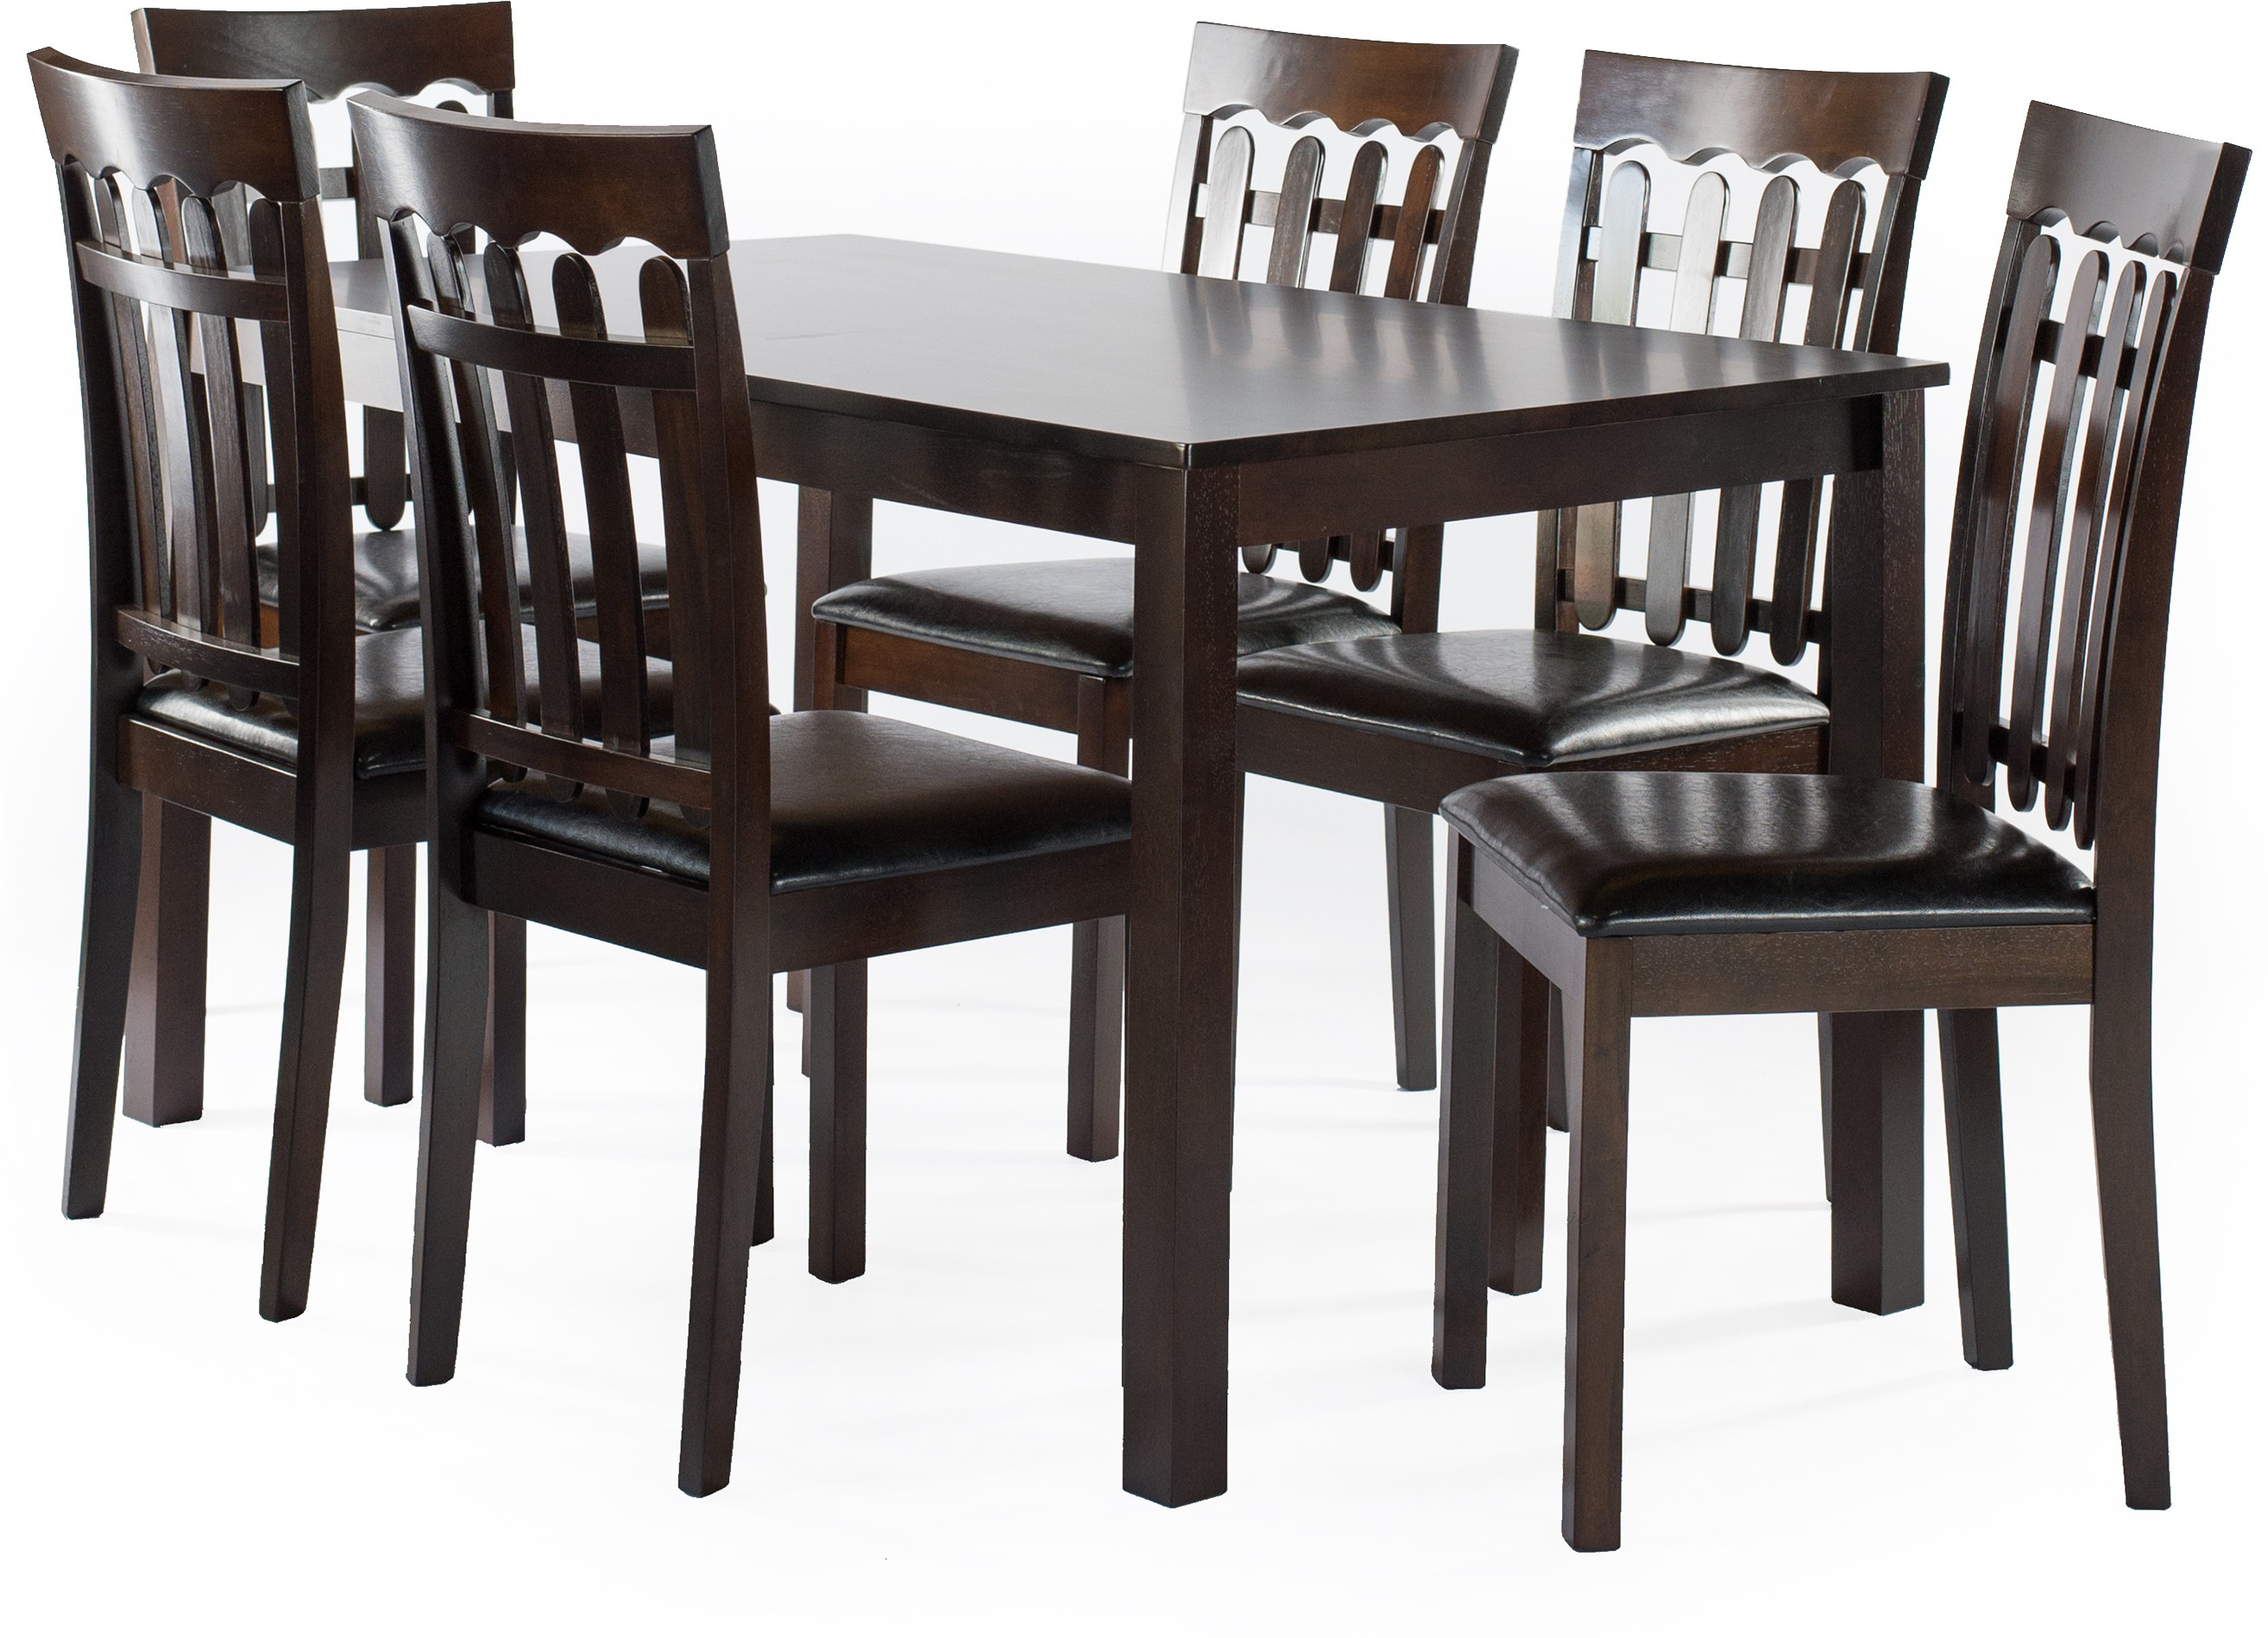 View FurnCulture Trentino Solid Wood 6 Seater Dining Set(Finish Color - Brown) Furniture (FurnCulture)